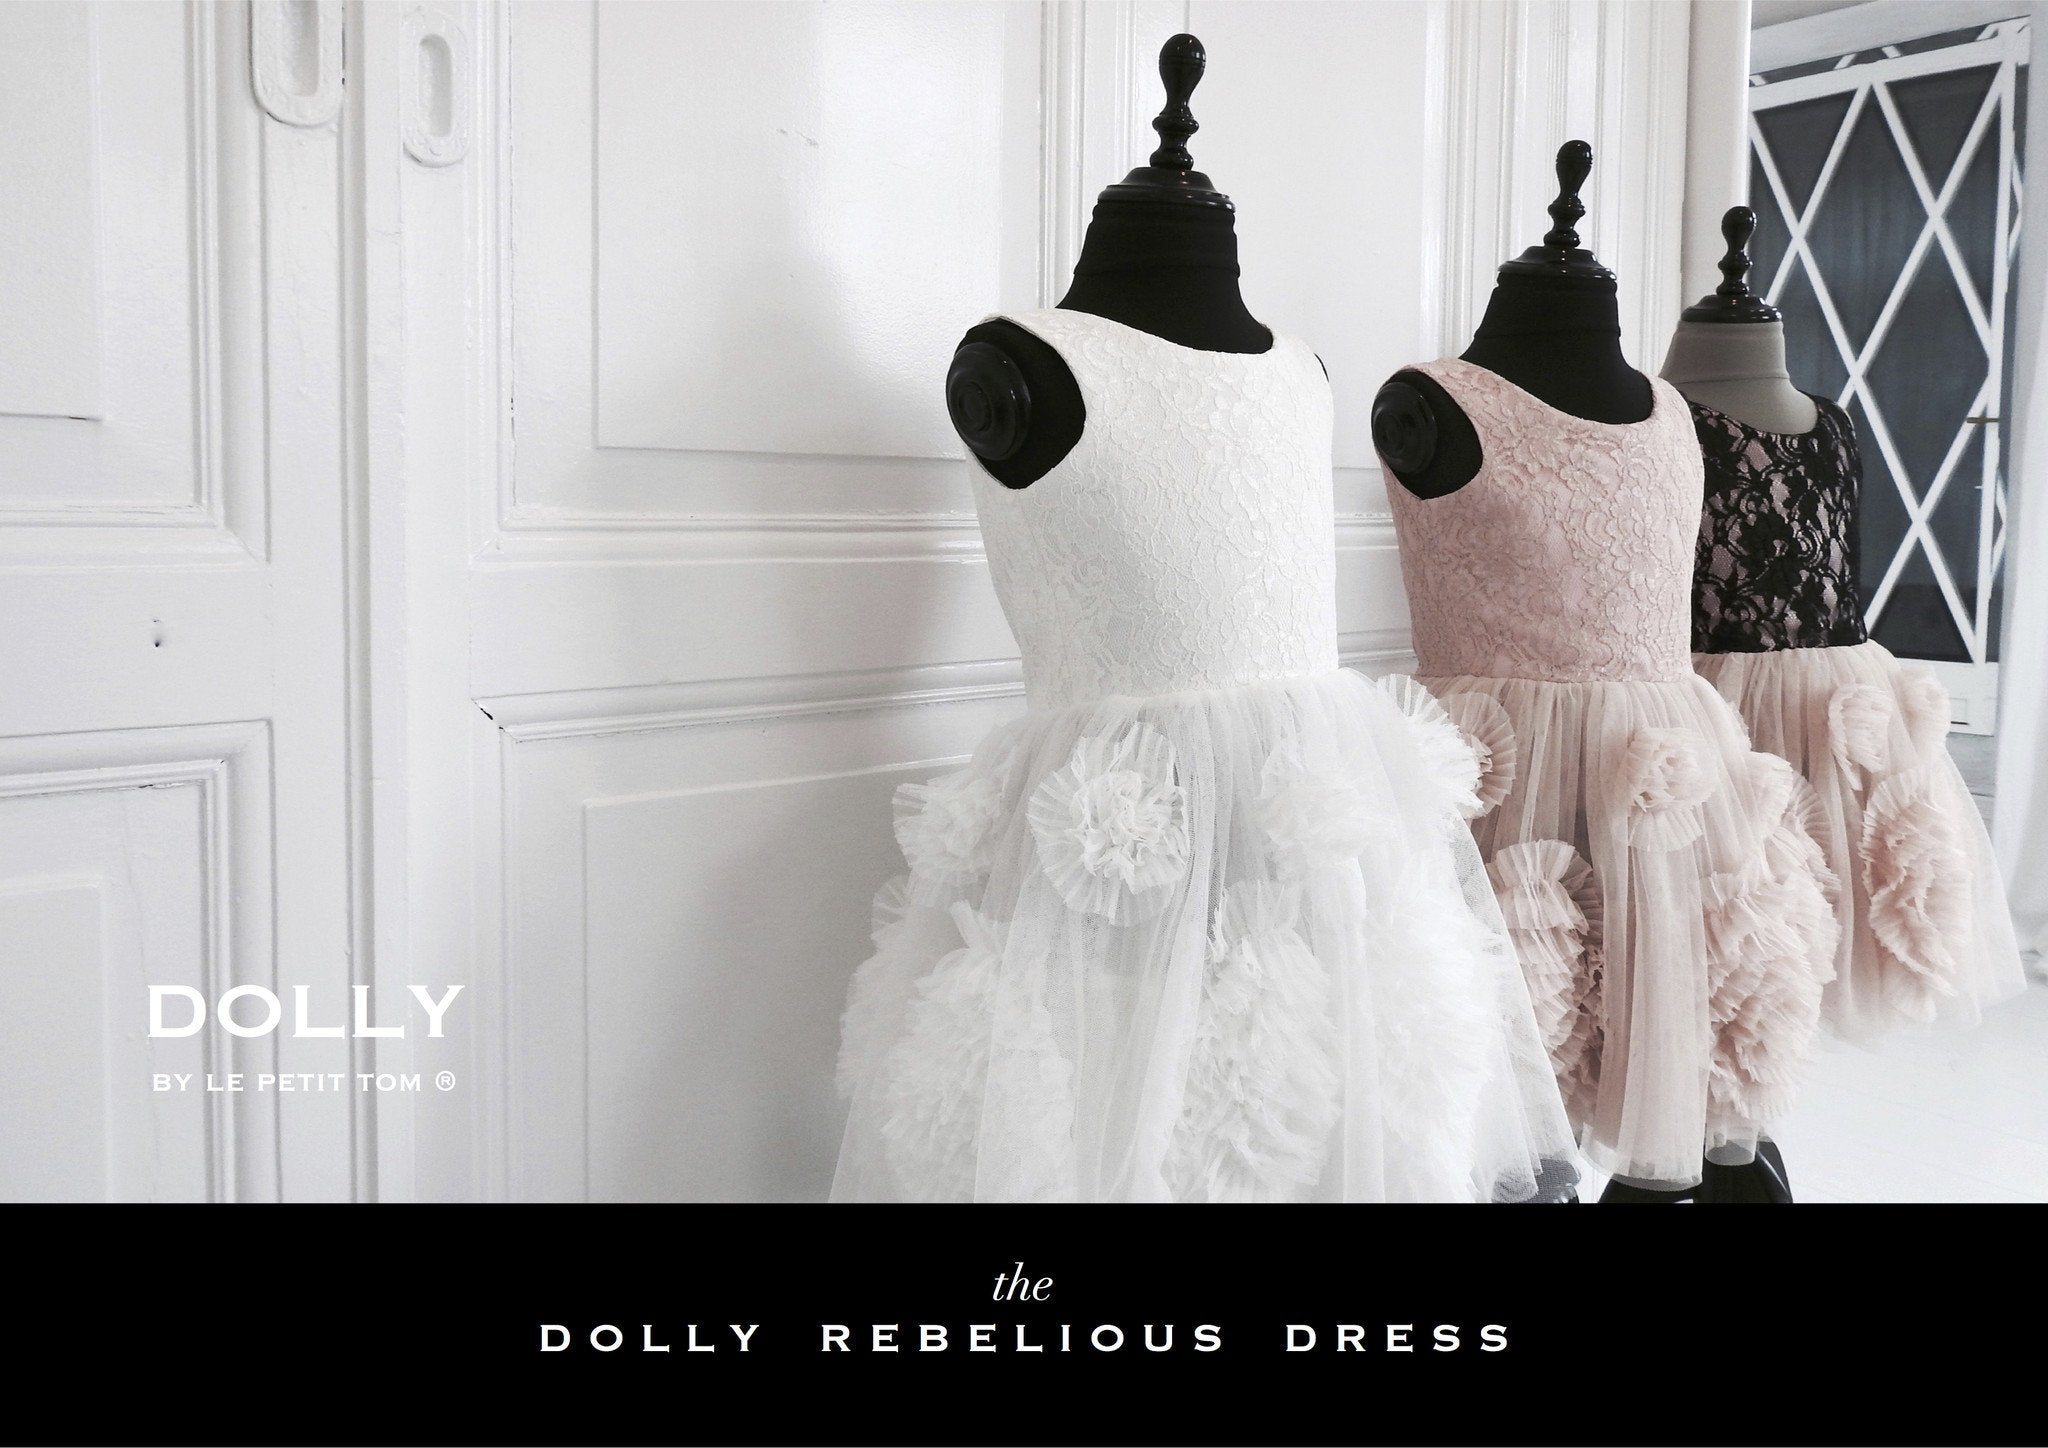 DOLLY by Le Petit Tom ® REBELLIOUS DRESS off-white - DOLLY by Le Petit Tom ®